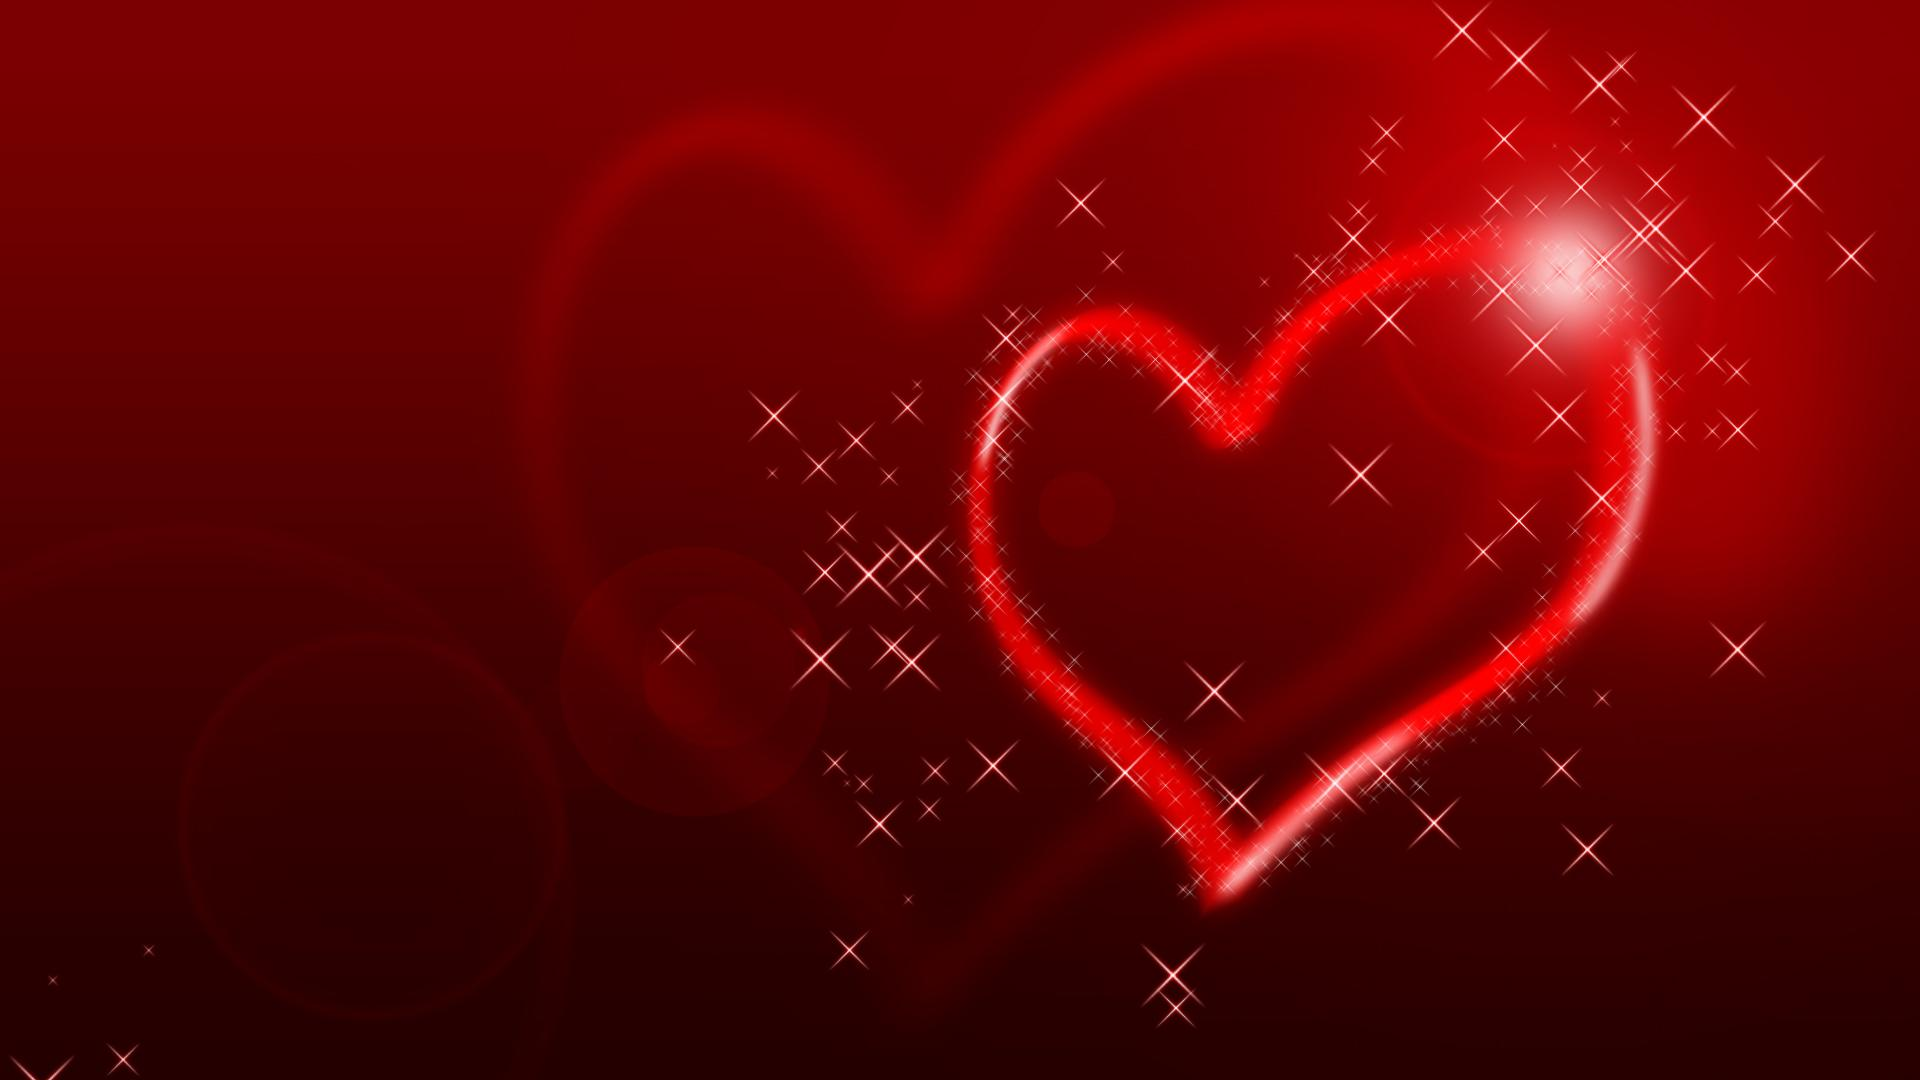 Magnificent Red Love HQ Wallpapers Worlds Greatest Art Site 1920x1080